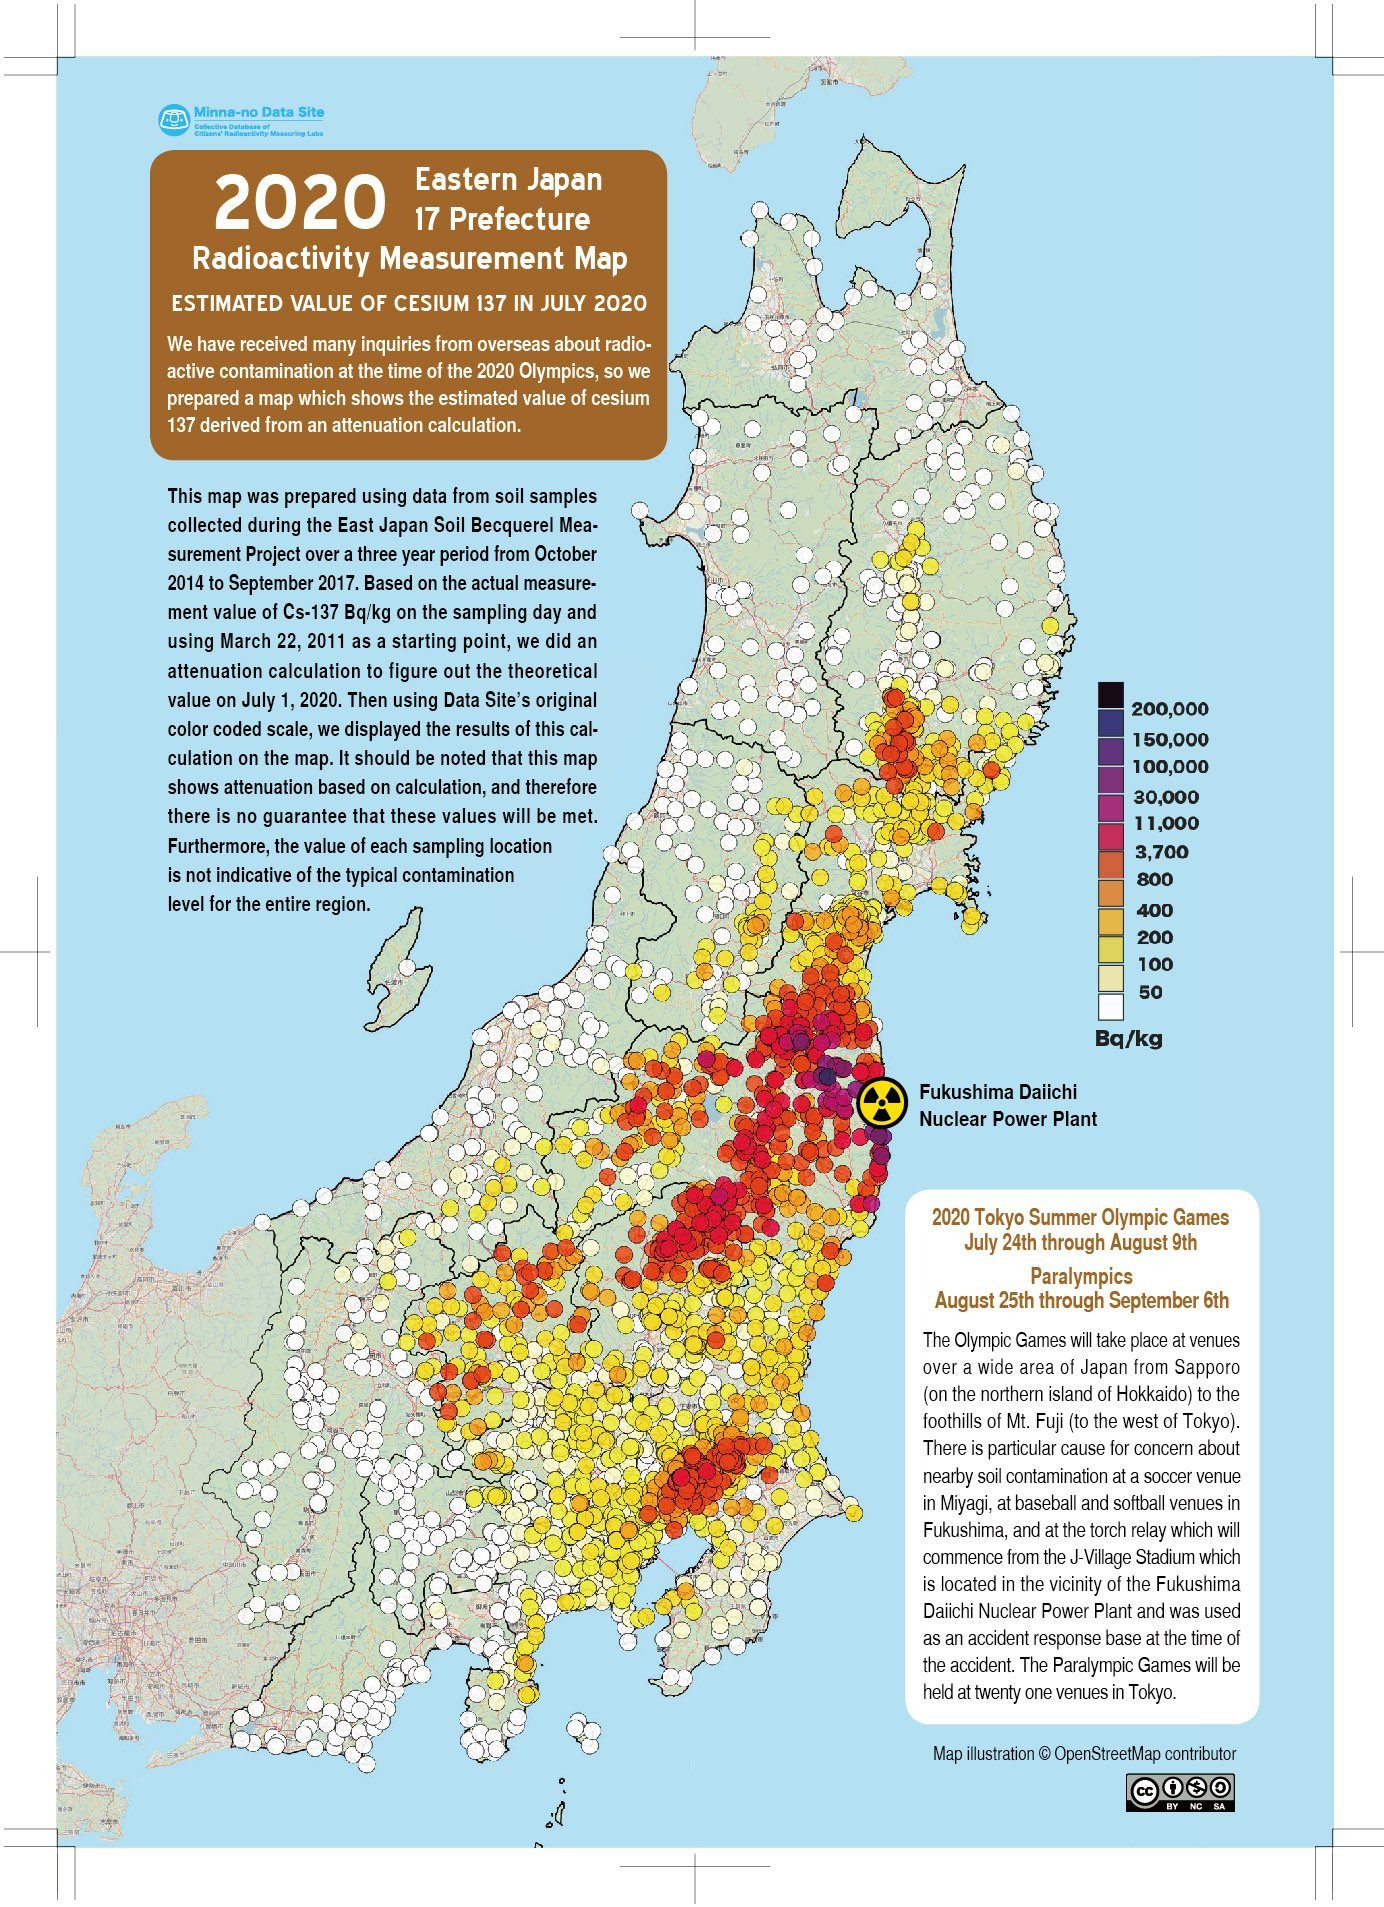 "Free Use Of Map Of Soil Radioactivity At The Time Of The Tokyo Olympics Ƴ¨ç›®è¨˜äº‹ Blog Á¿ã'""なのデータサイト"